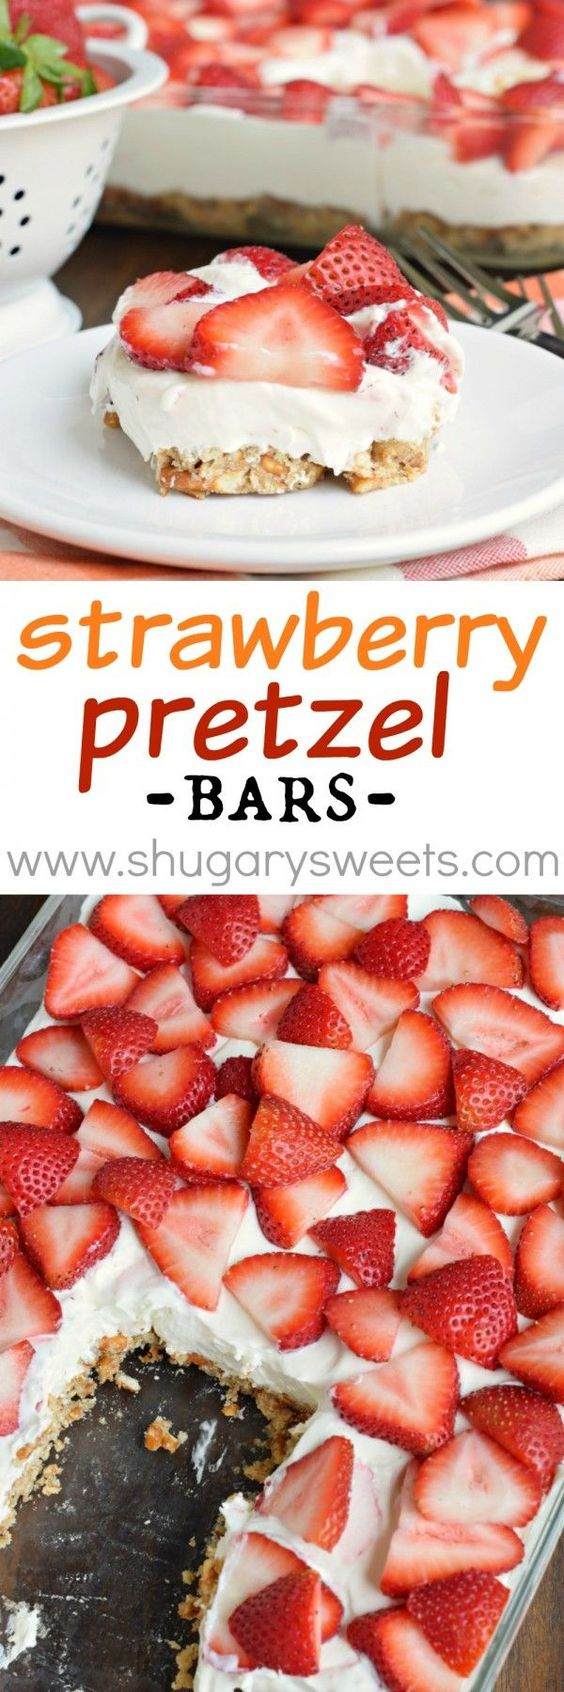 Strawberry Pretzel Bars: these no bake sweet and salty cheesecake bars ...